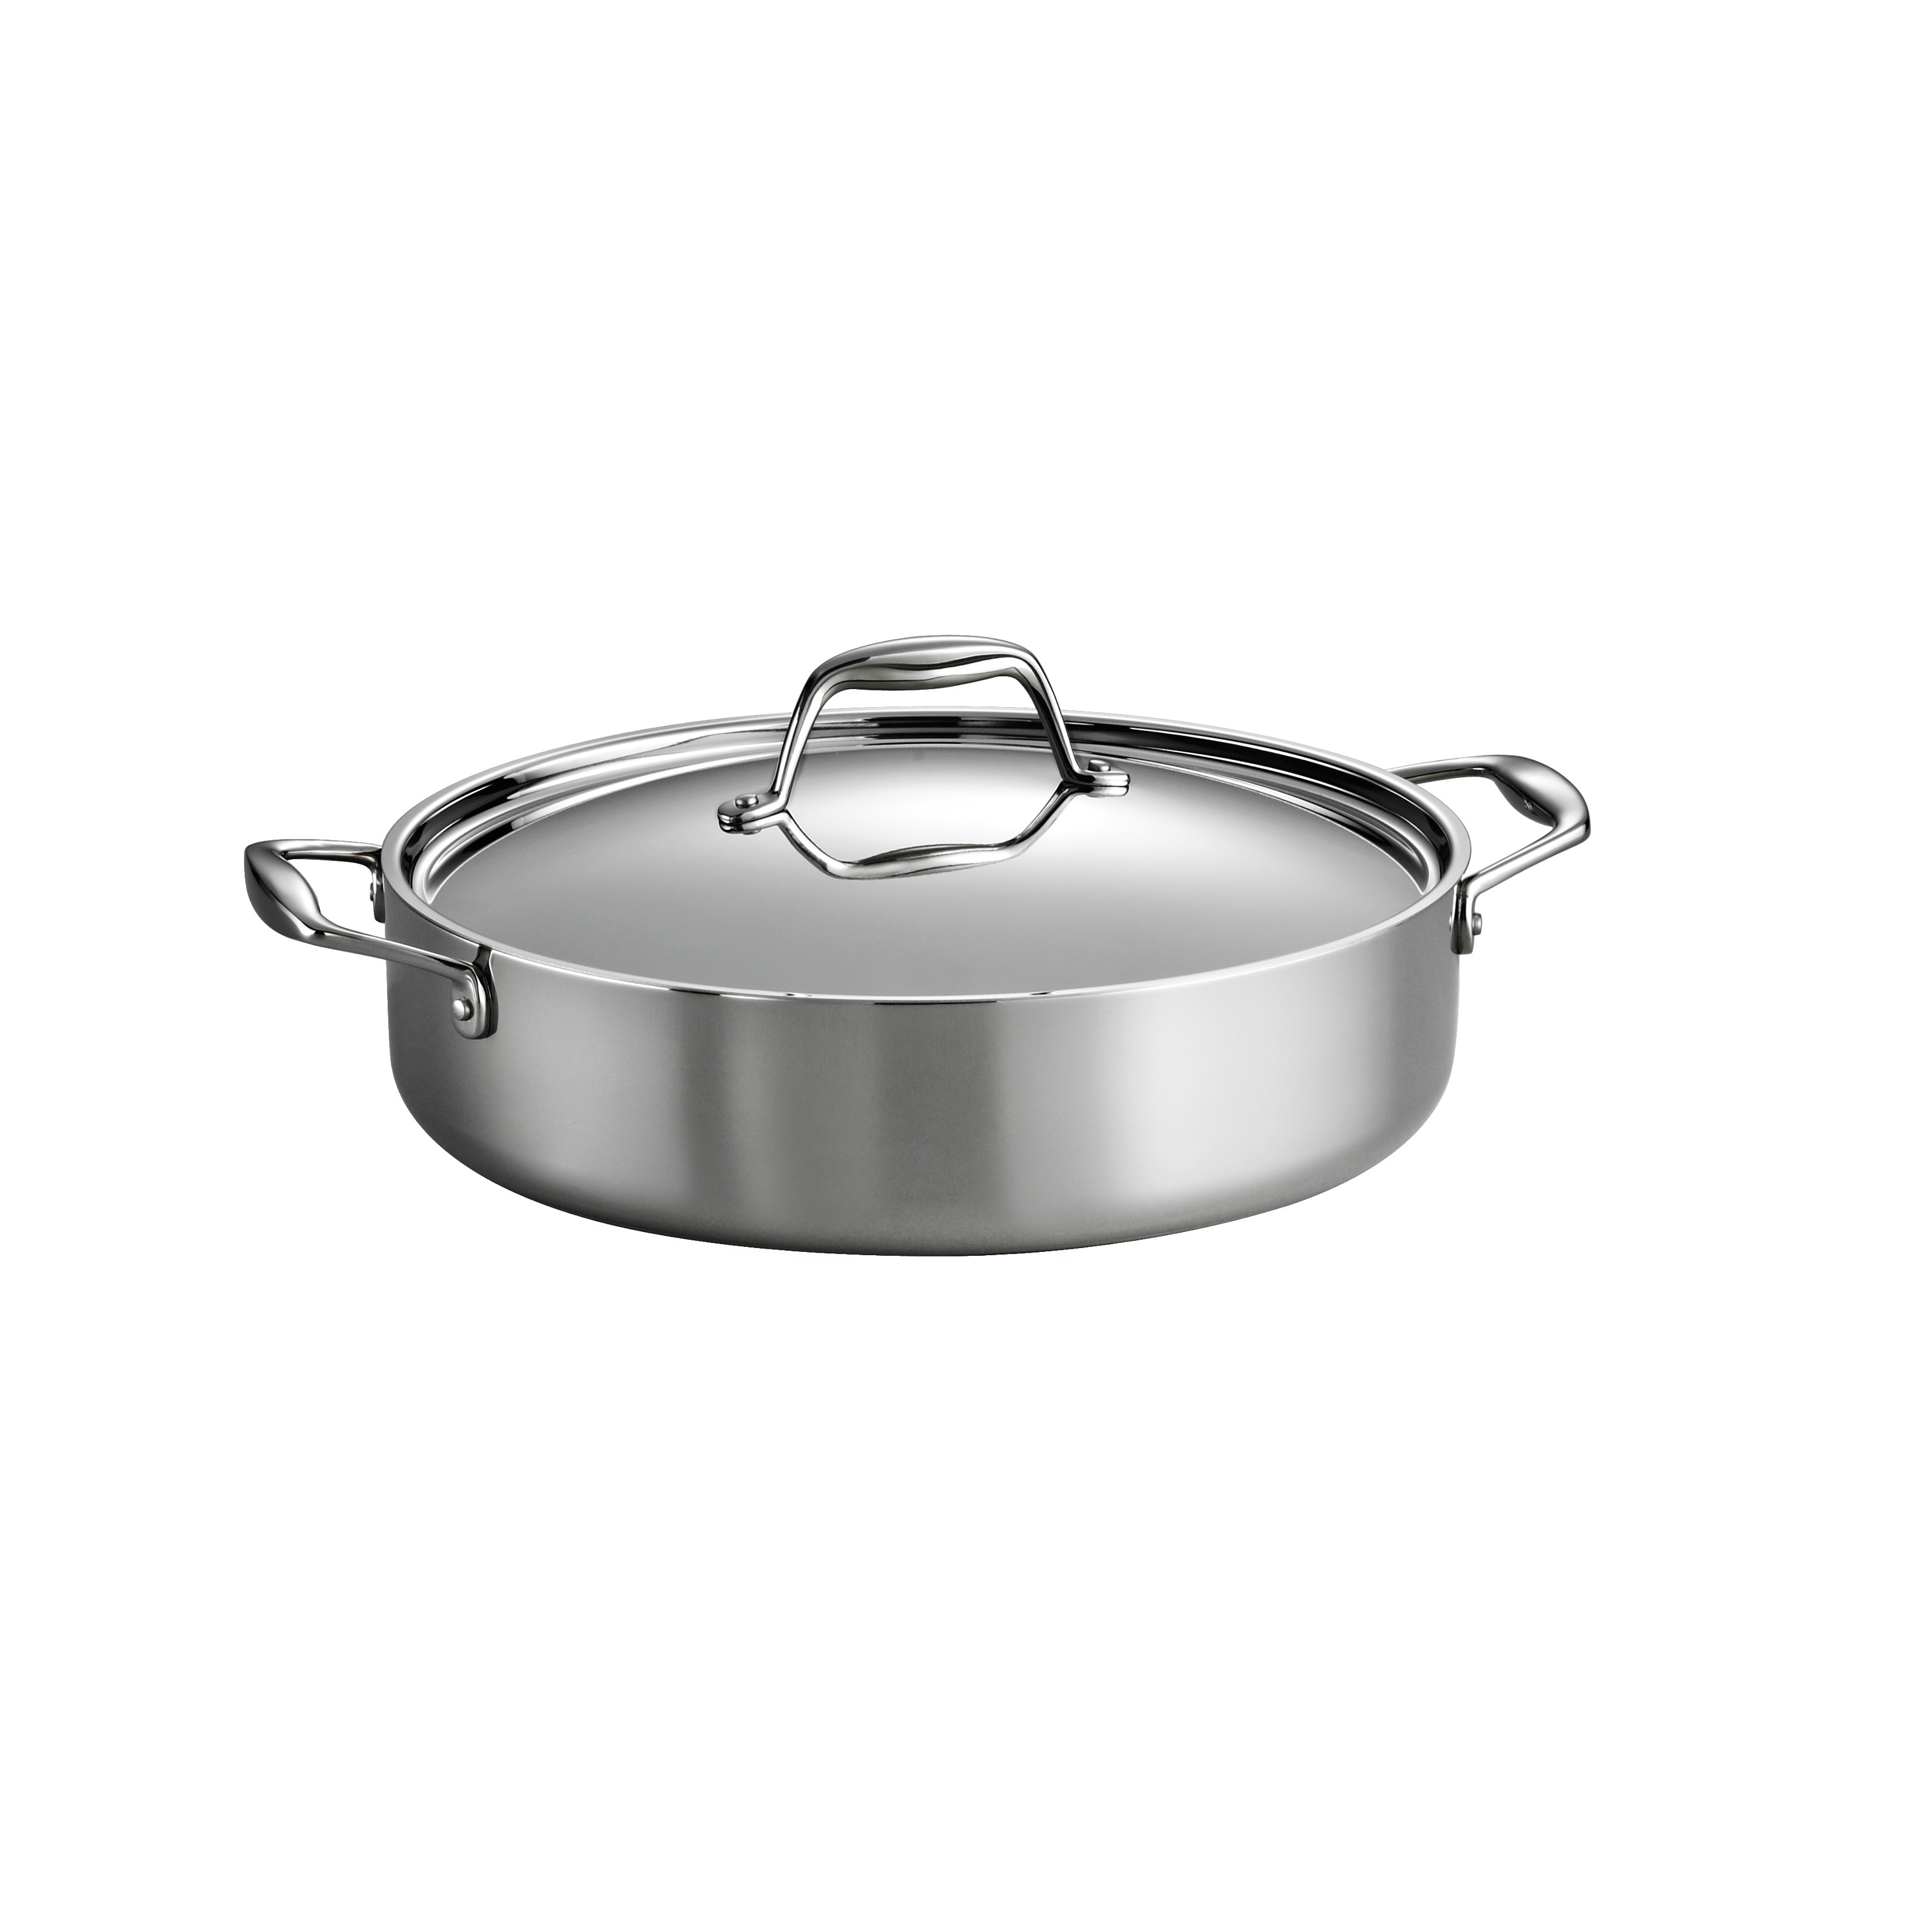 0016017101098 - GOURMET -TRI-PLY CLAD 18/10 STAINLESS STEEL INDUCTION-READY 5 QT COVERED BRAISER